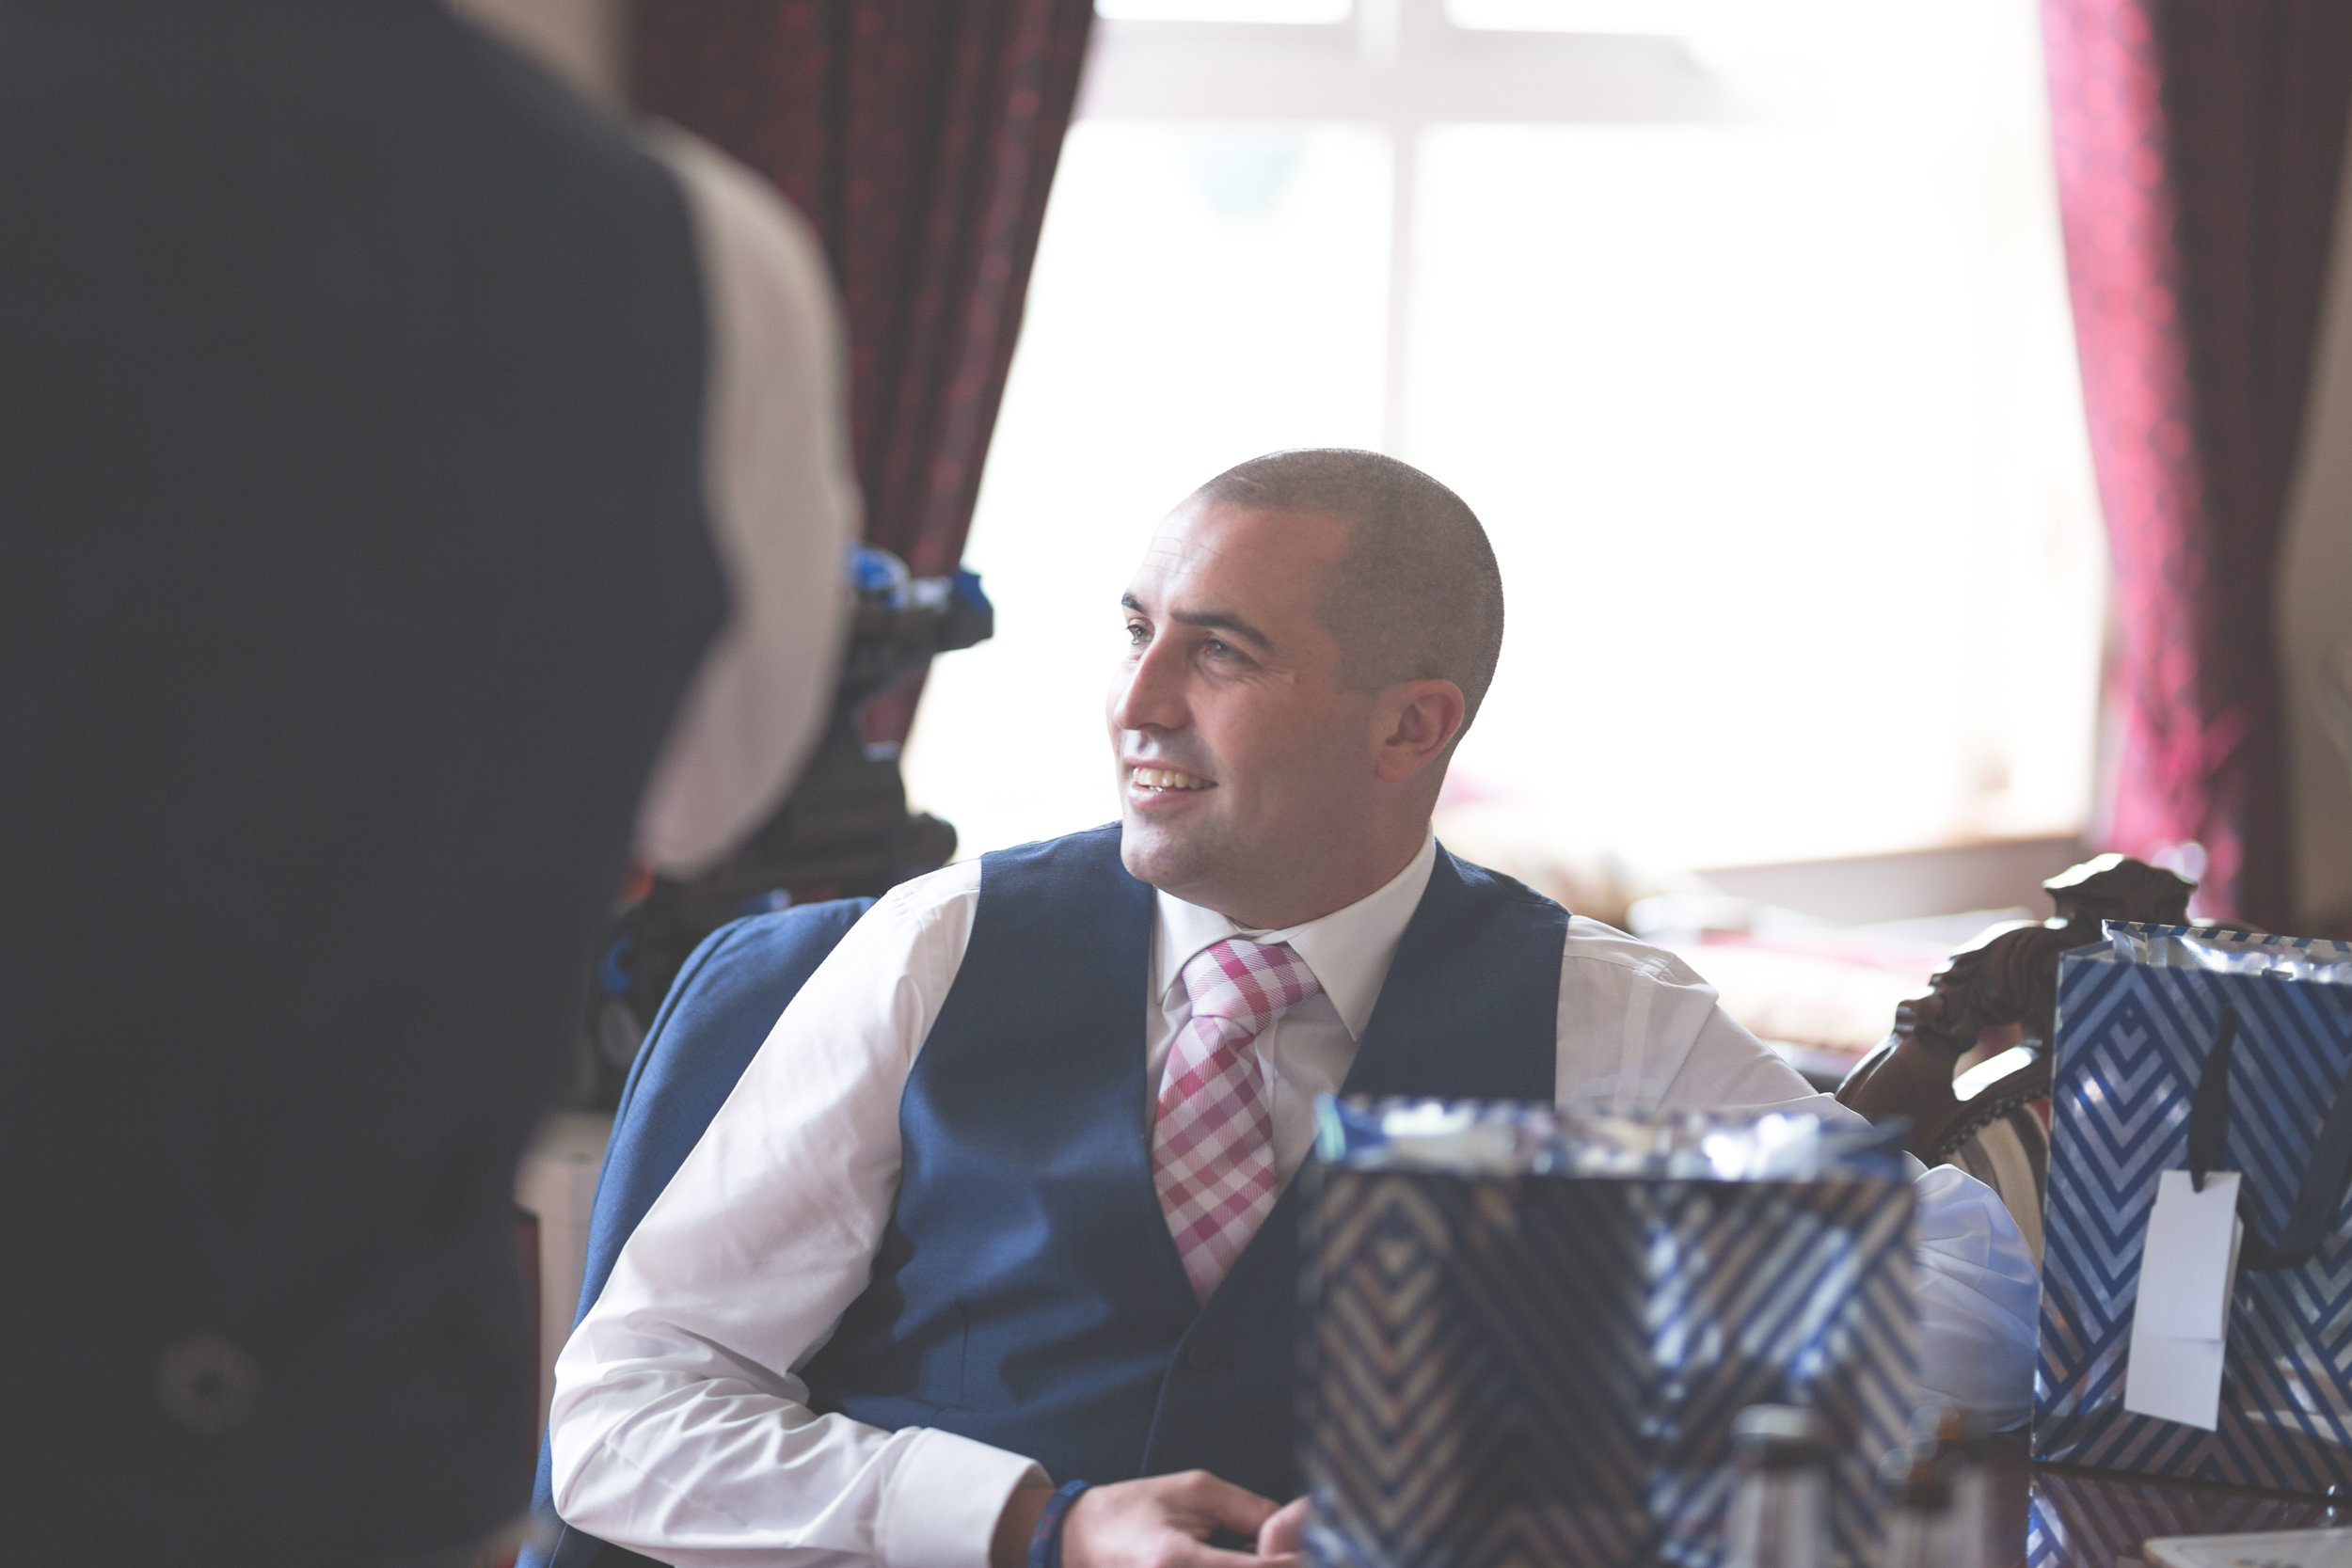 Antoinette & Stephen - Groom & Groomsmen | Brian McEwan Photography | Wedding Photographer Northern Ireland 23.jpg